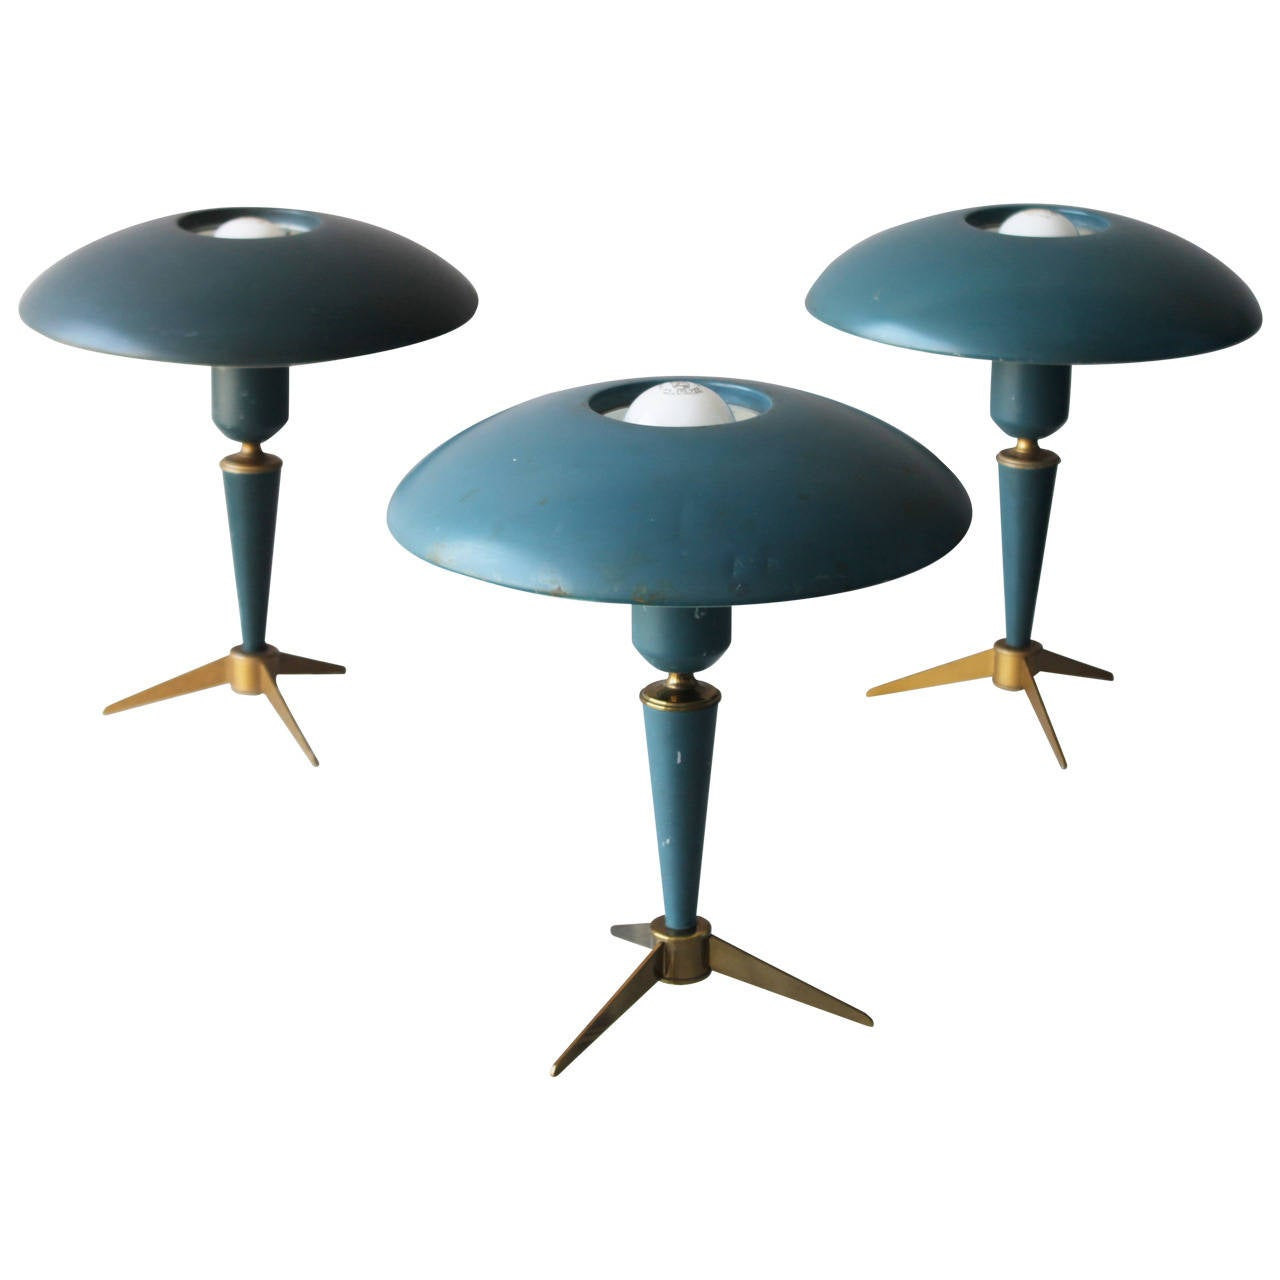 Three tripod table lamps by louis kalff for philips for sale at three tripod table lamps by louis kalff for philips 1 mozeypictures Gallery